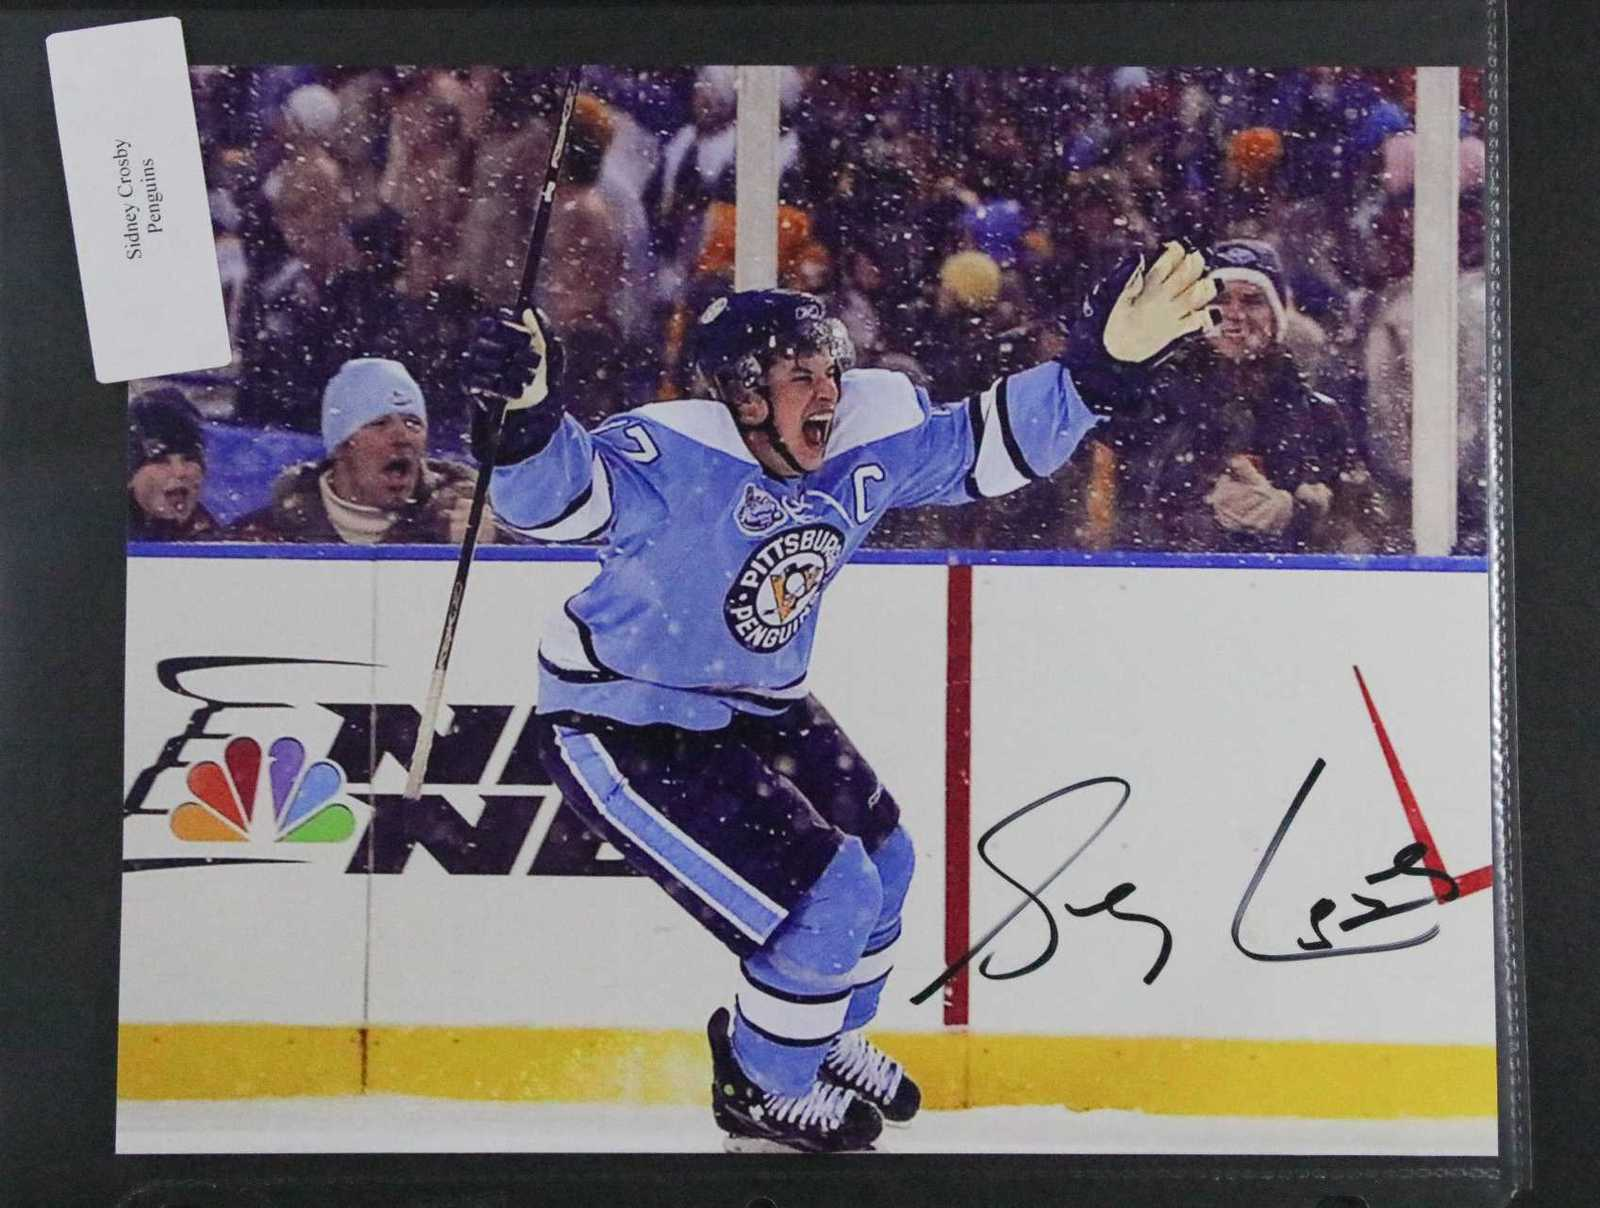 f8ab71e47aa 1138. 1138. Sidney Crosby Signed Autographed Glossy 8x10 Photo - Pittsburgh  Penguins. Free Shipping